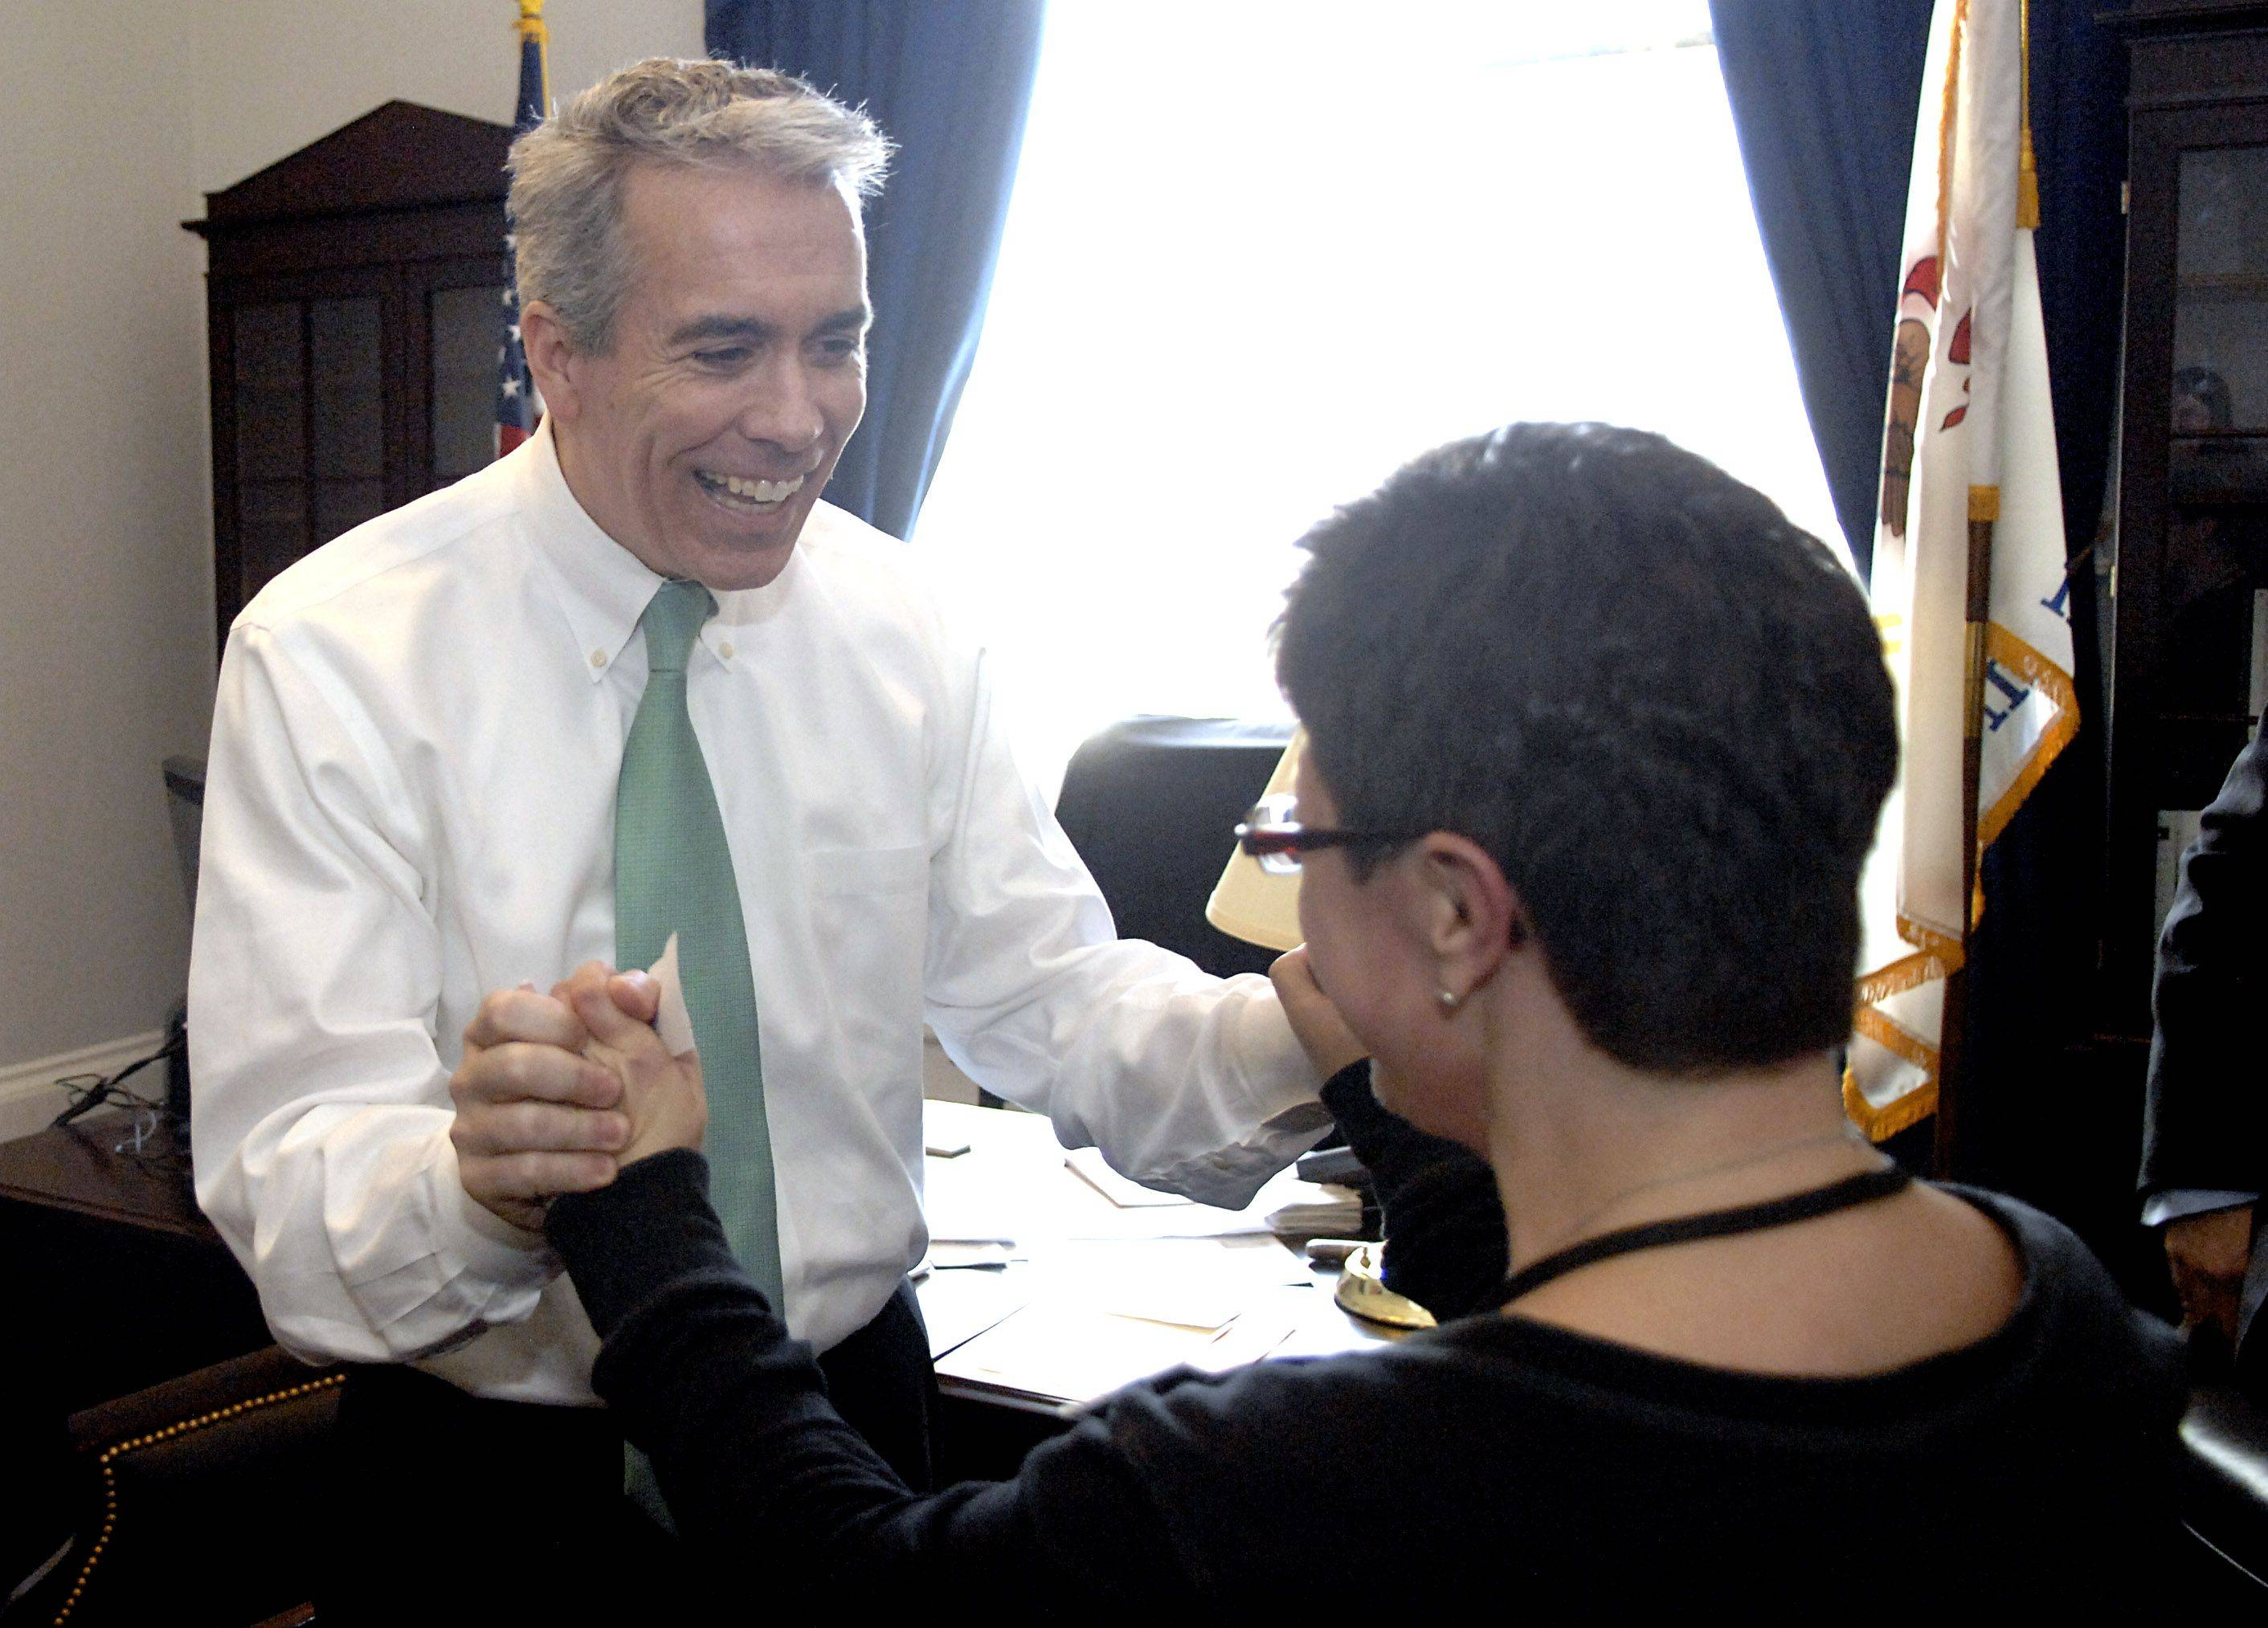 U.S. Rep. Joe Walsh greets Rachel Lipke of Northbrook in his Washington, D.C., office.